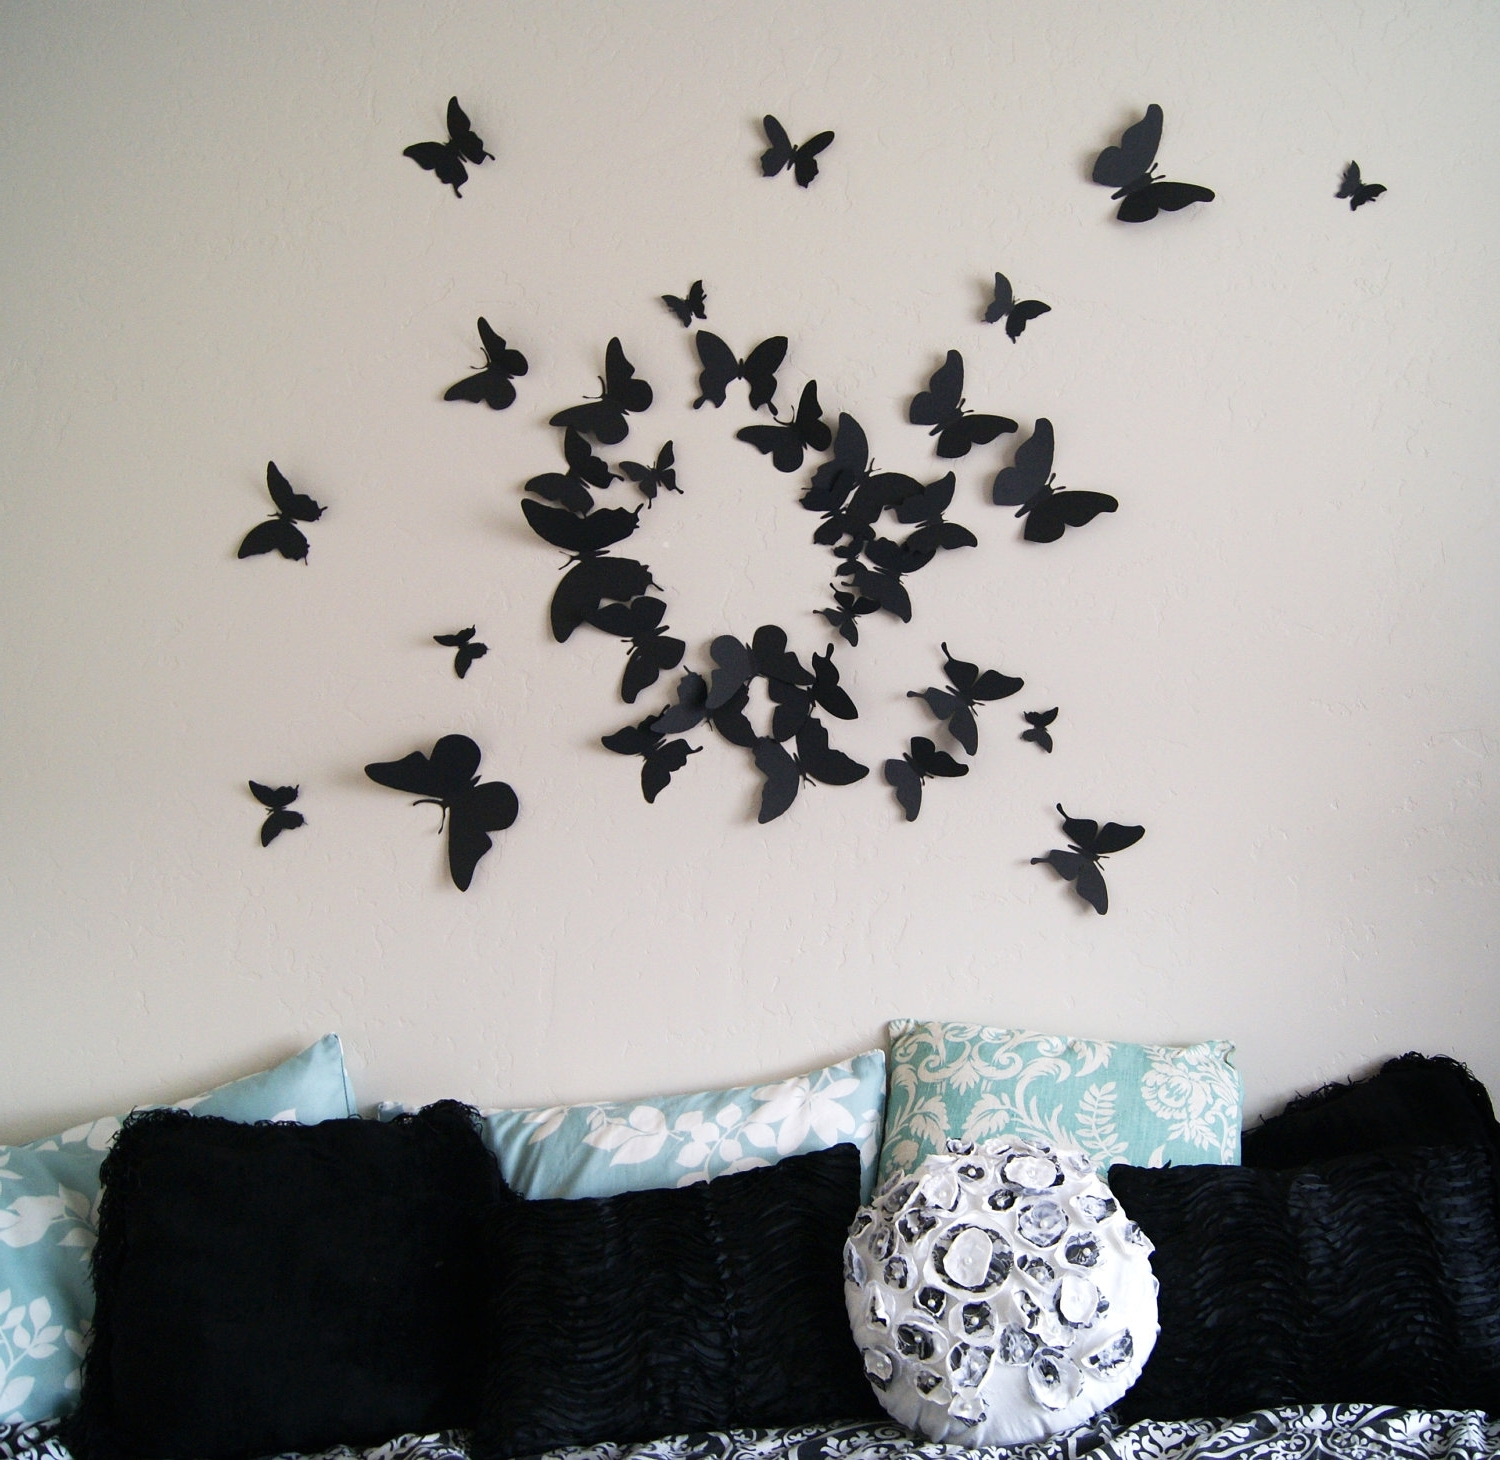 Newest 3D Butterfly Wall Art Intended For Free Us Shipping 40 3D Butterfly Wall Art Circle Burstleeshay (View 9 of 15)